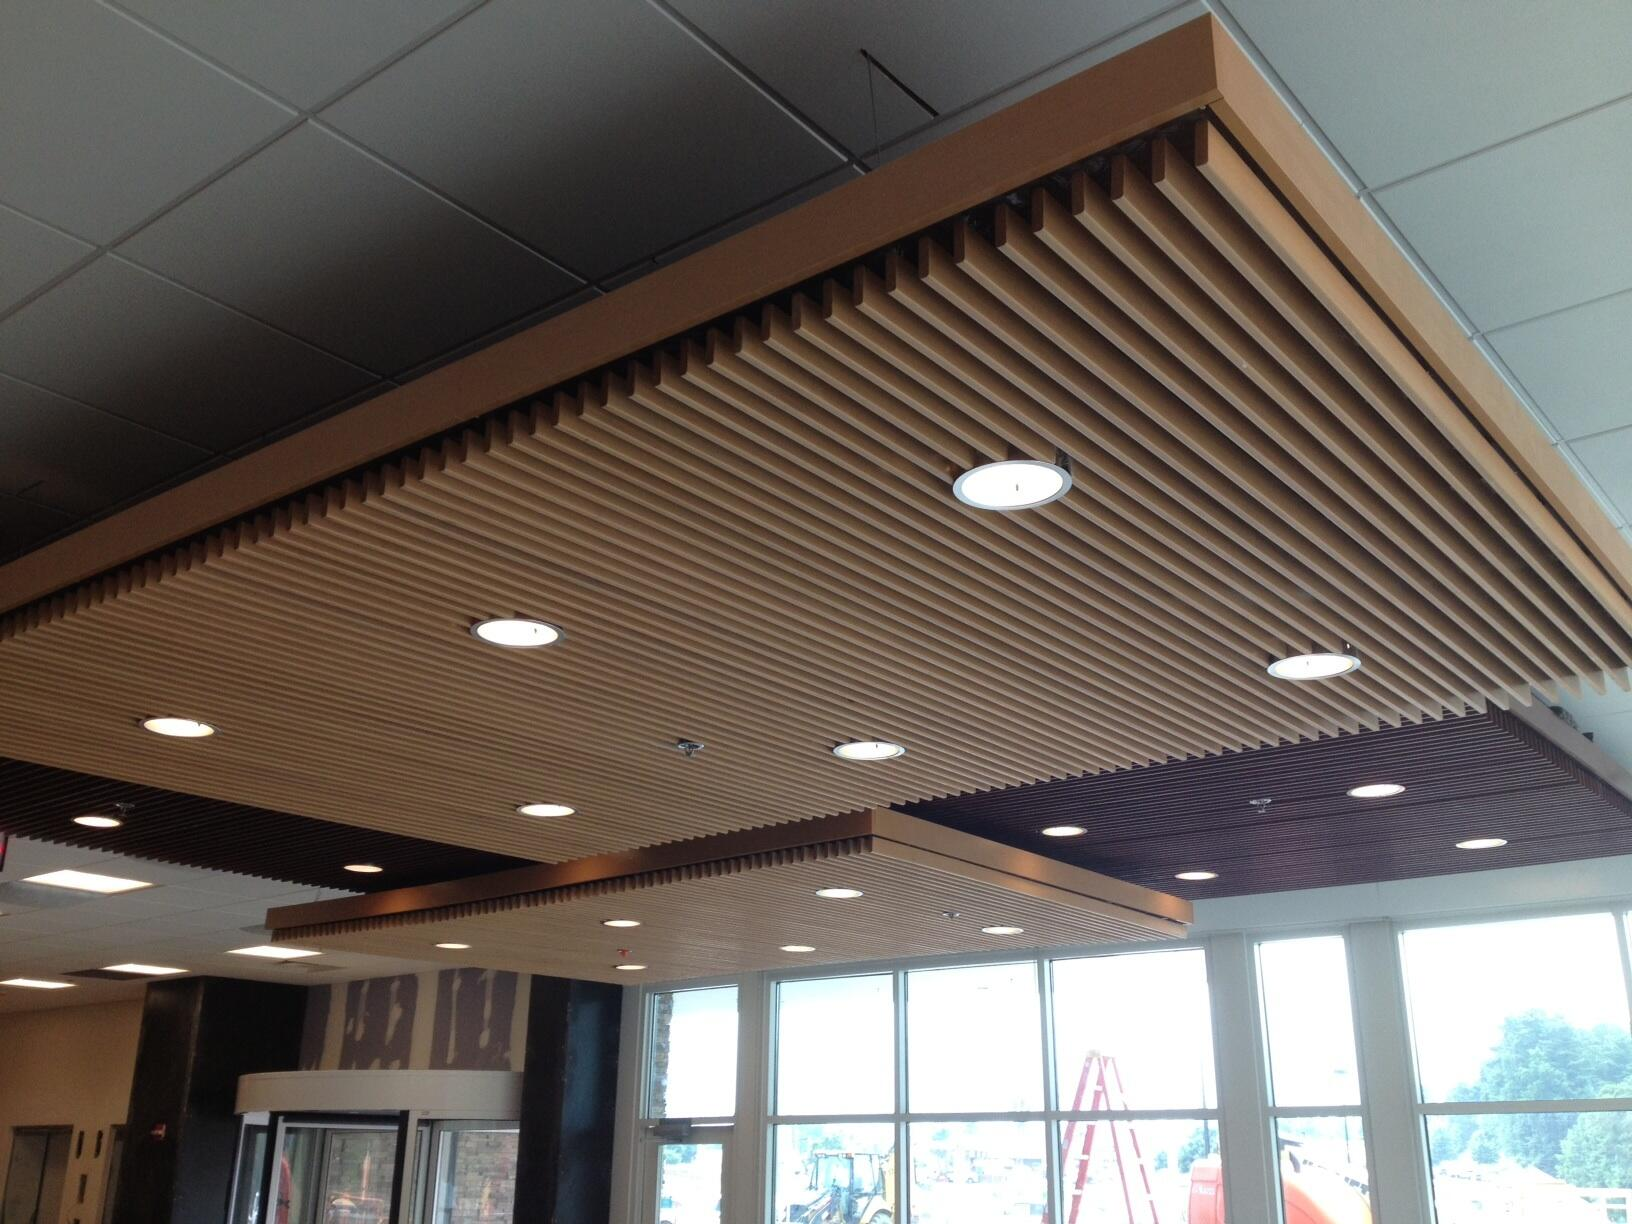 Armstrong CIS on Twitter: u0026quot;Check out this WoodWorks Grille cloud install http://t.co/plmyzLmWvru0026quot;